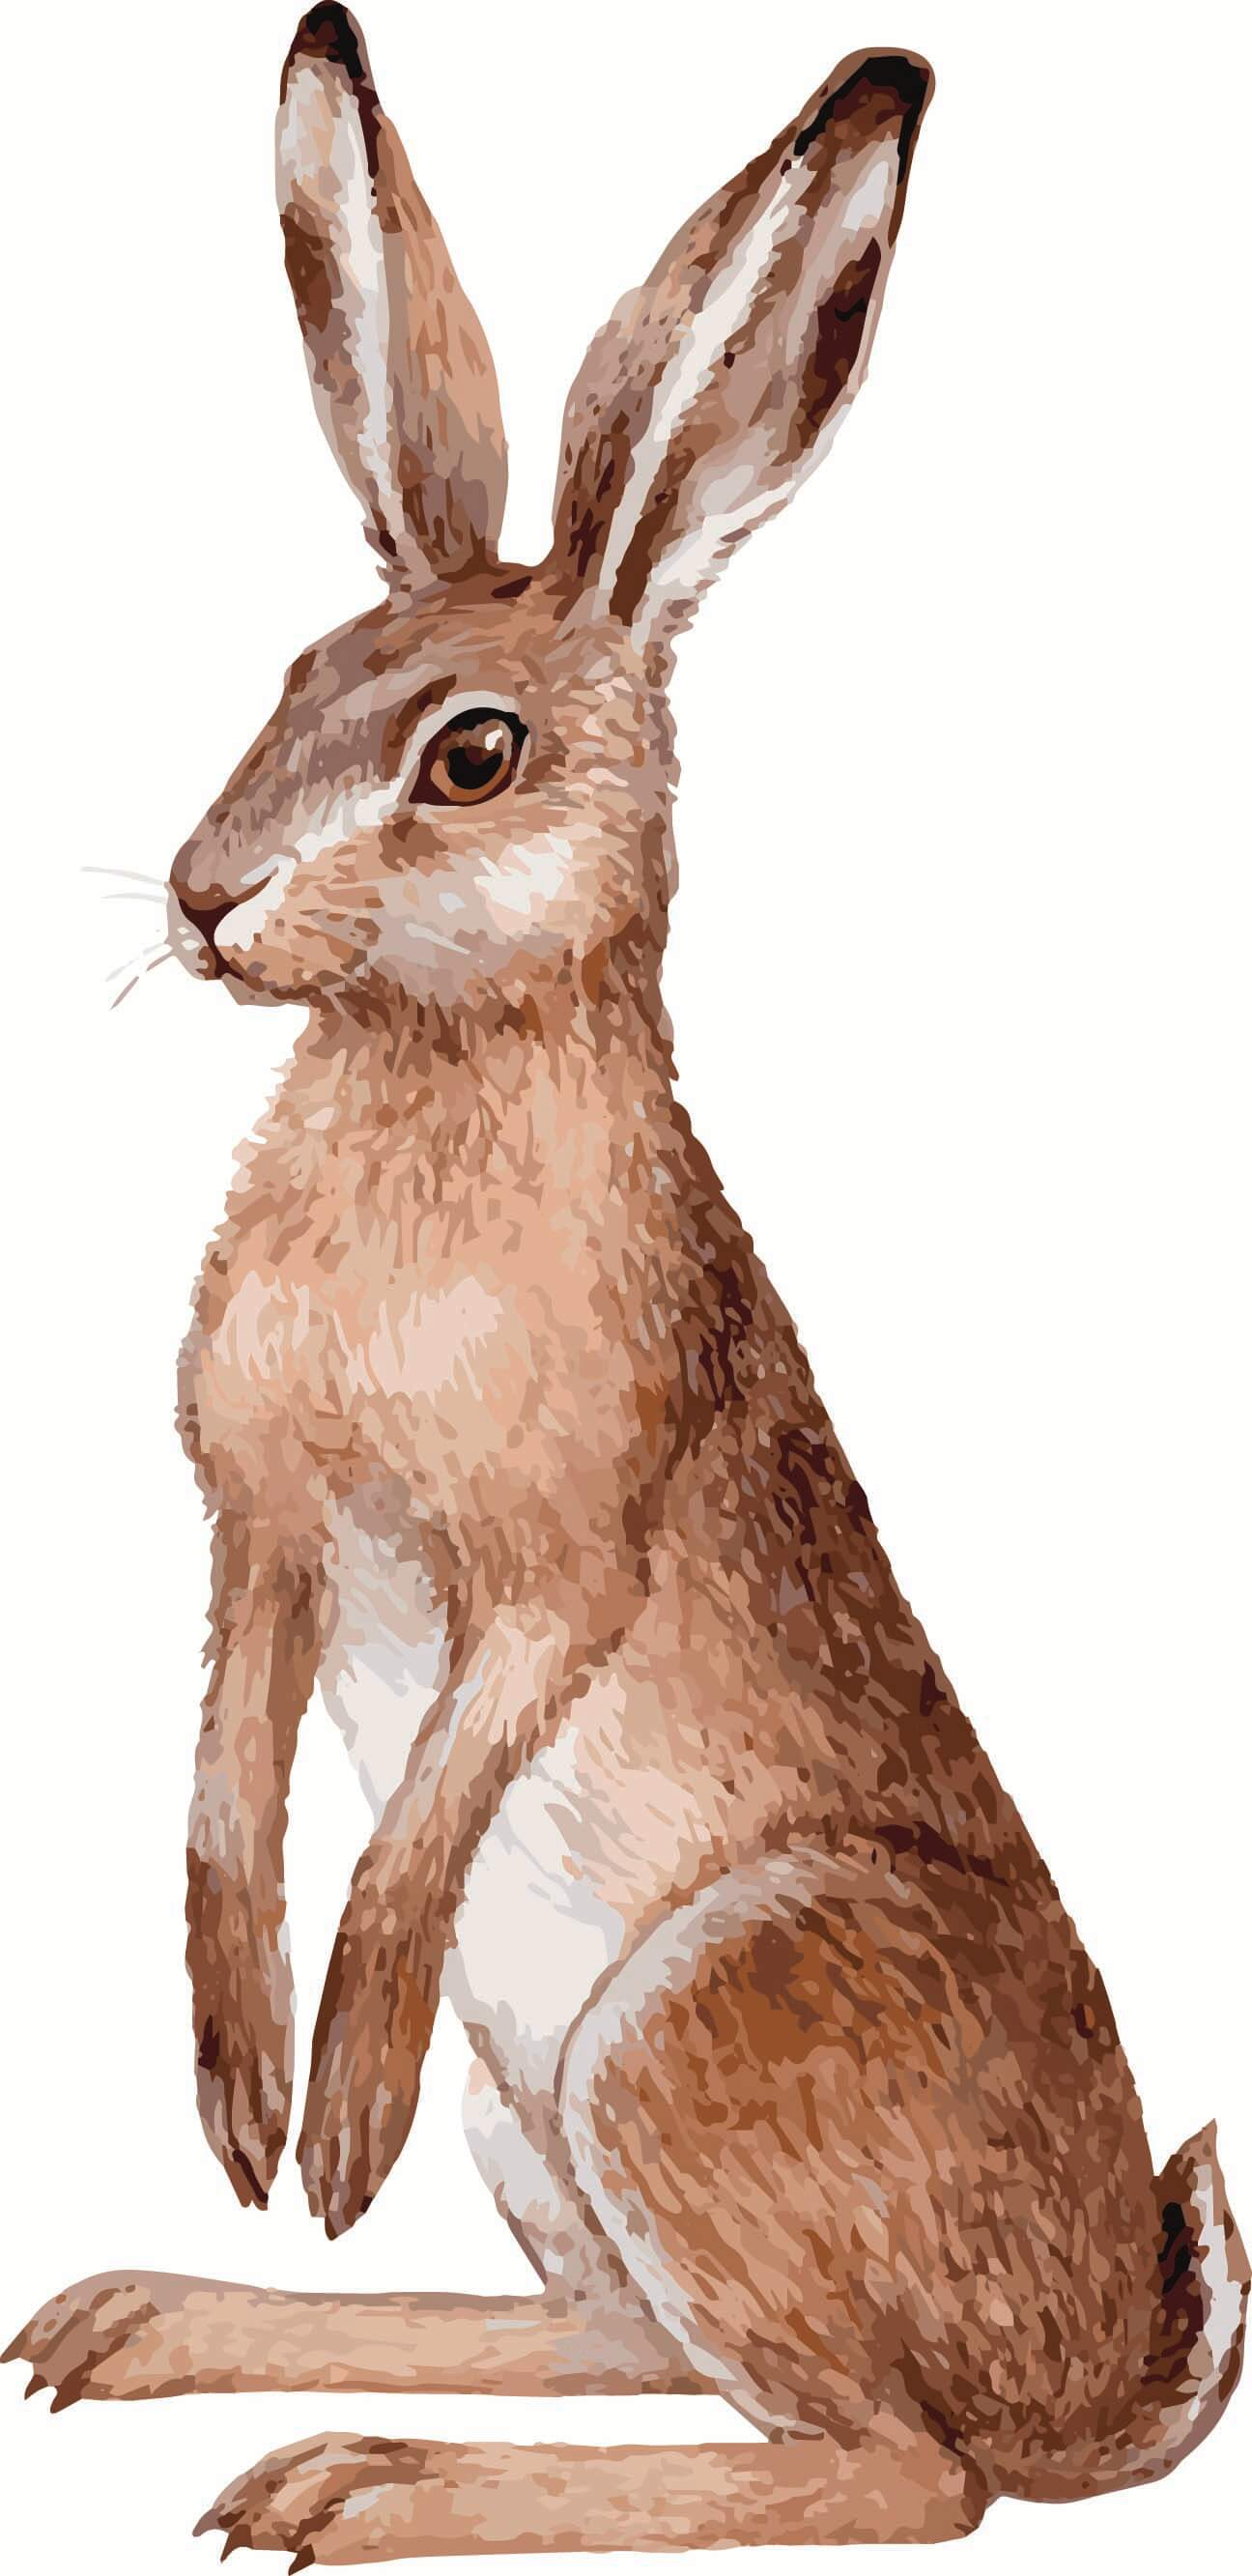 a drawing of a hare